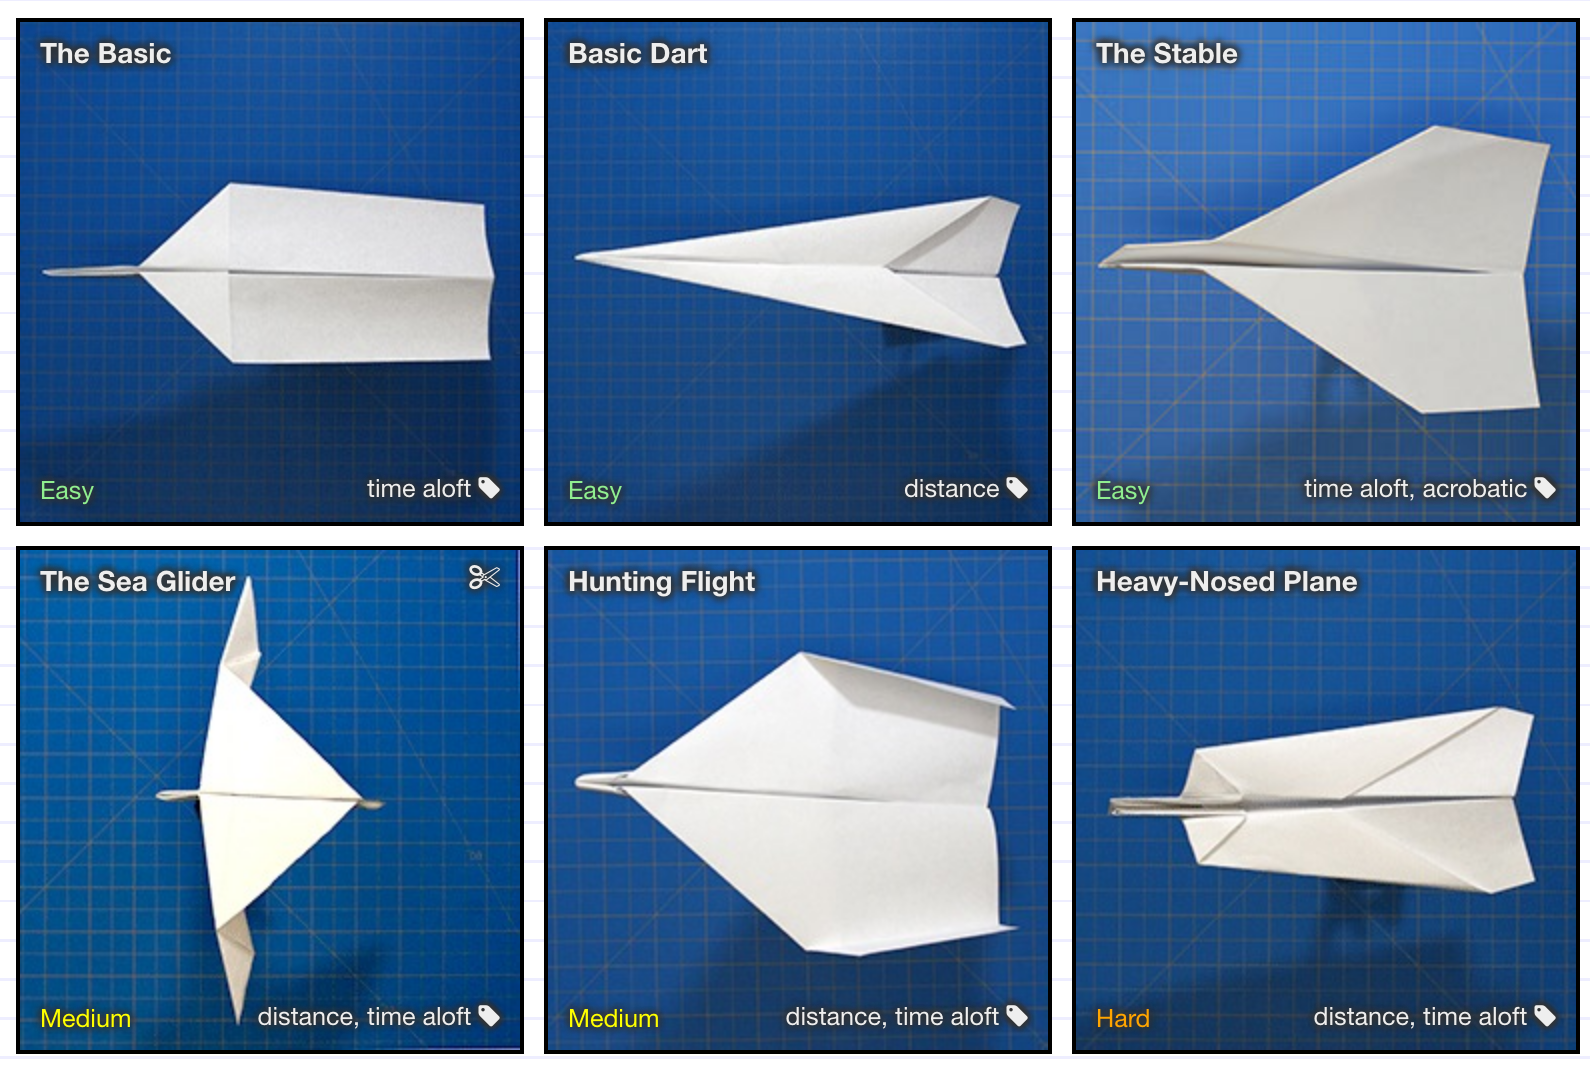 Paper airplane designs / Boing Boing - photo#25